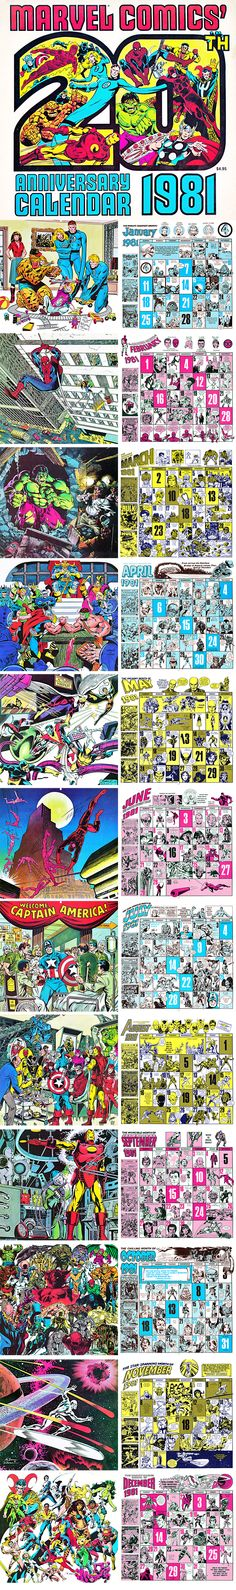 1981 Marvel Comics Calendar Perfectly Align with 2015 The best calendar for 2015…